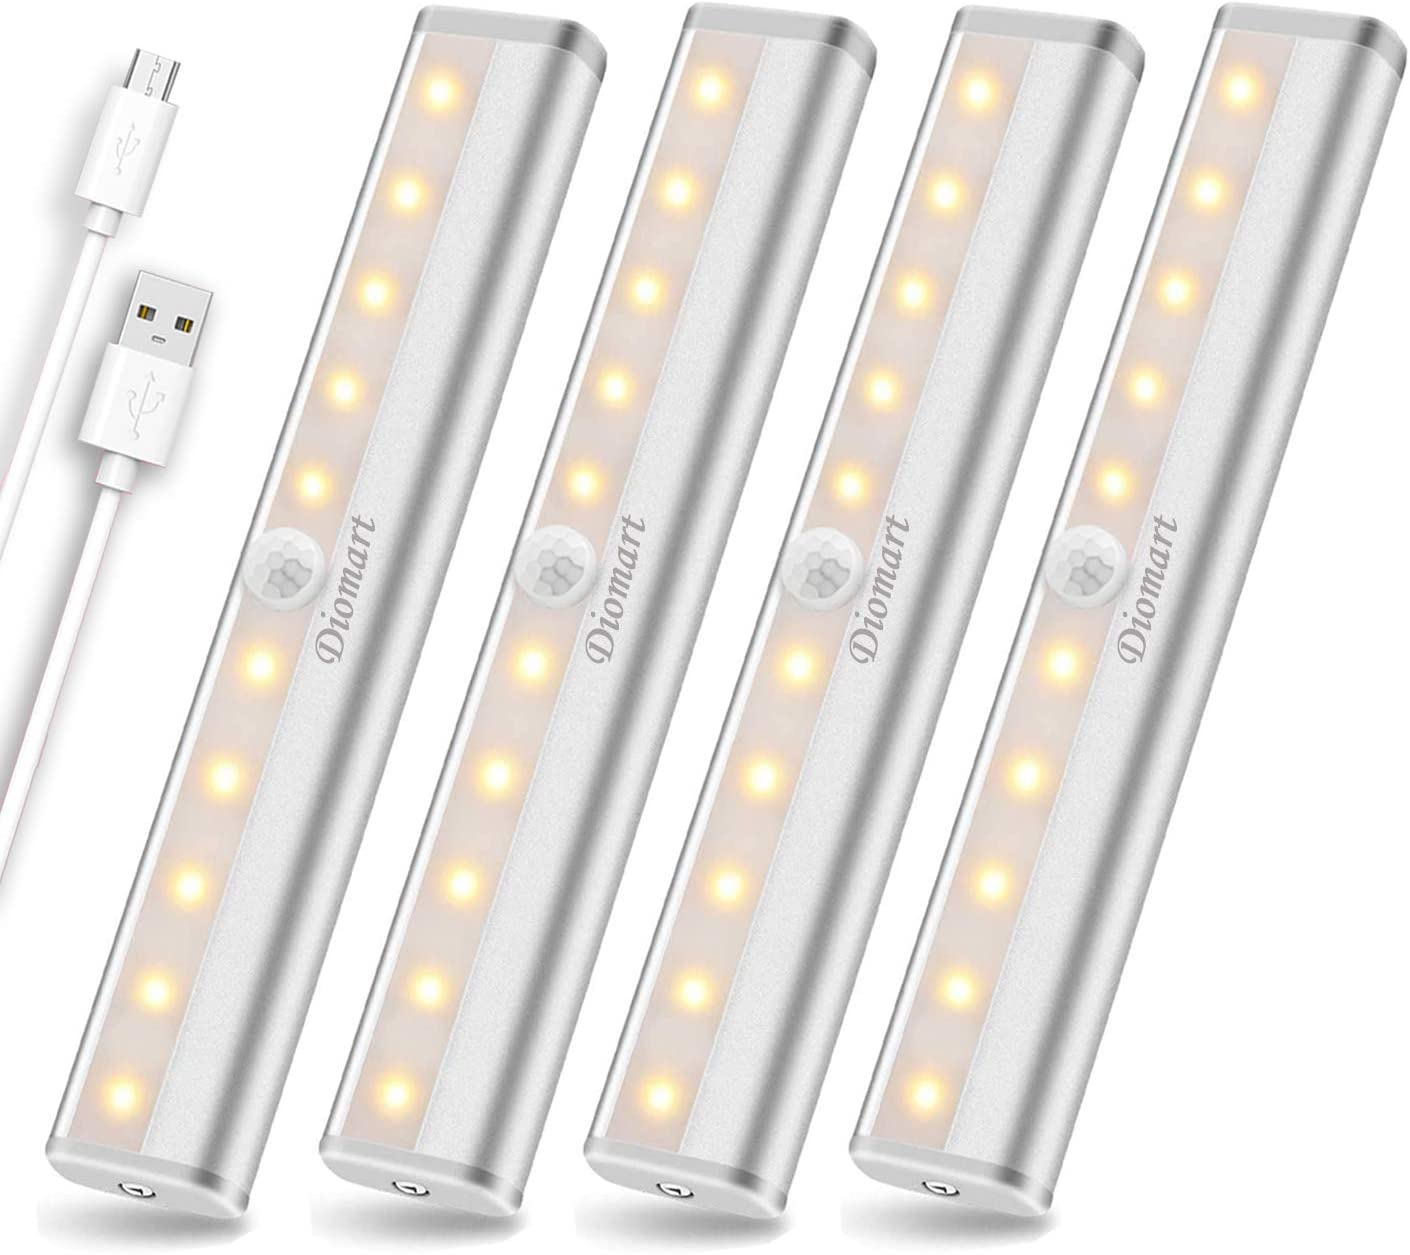 Under Cabinet Lighting Wireless, 10 LED Rechargeable Motion Sensor Closet Lights, Stick On Lights, Under Counter Kitchen Lights LED Motion Night Light for Stairs Hallway Wardrobe, Warm White, 4 Pack